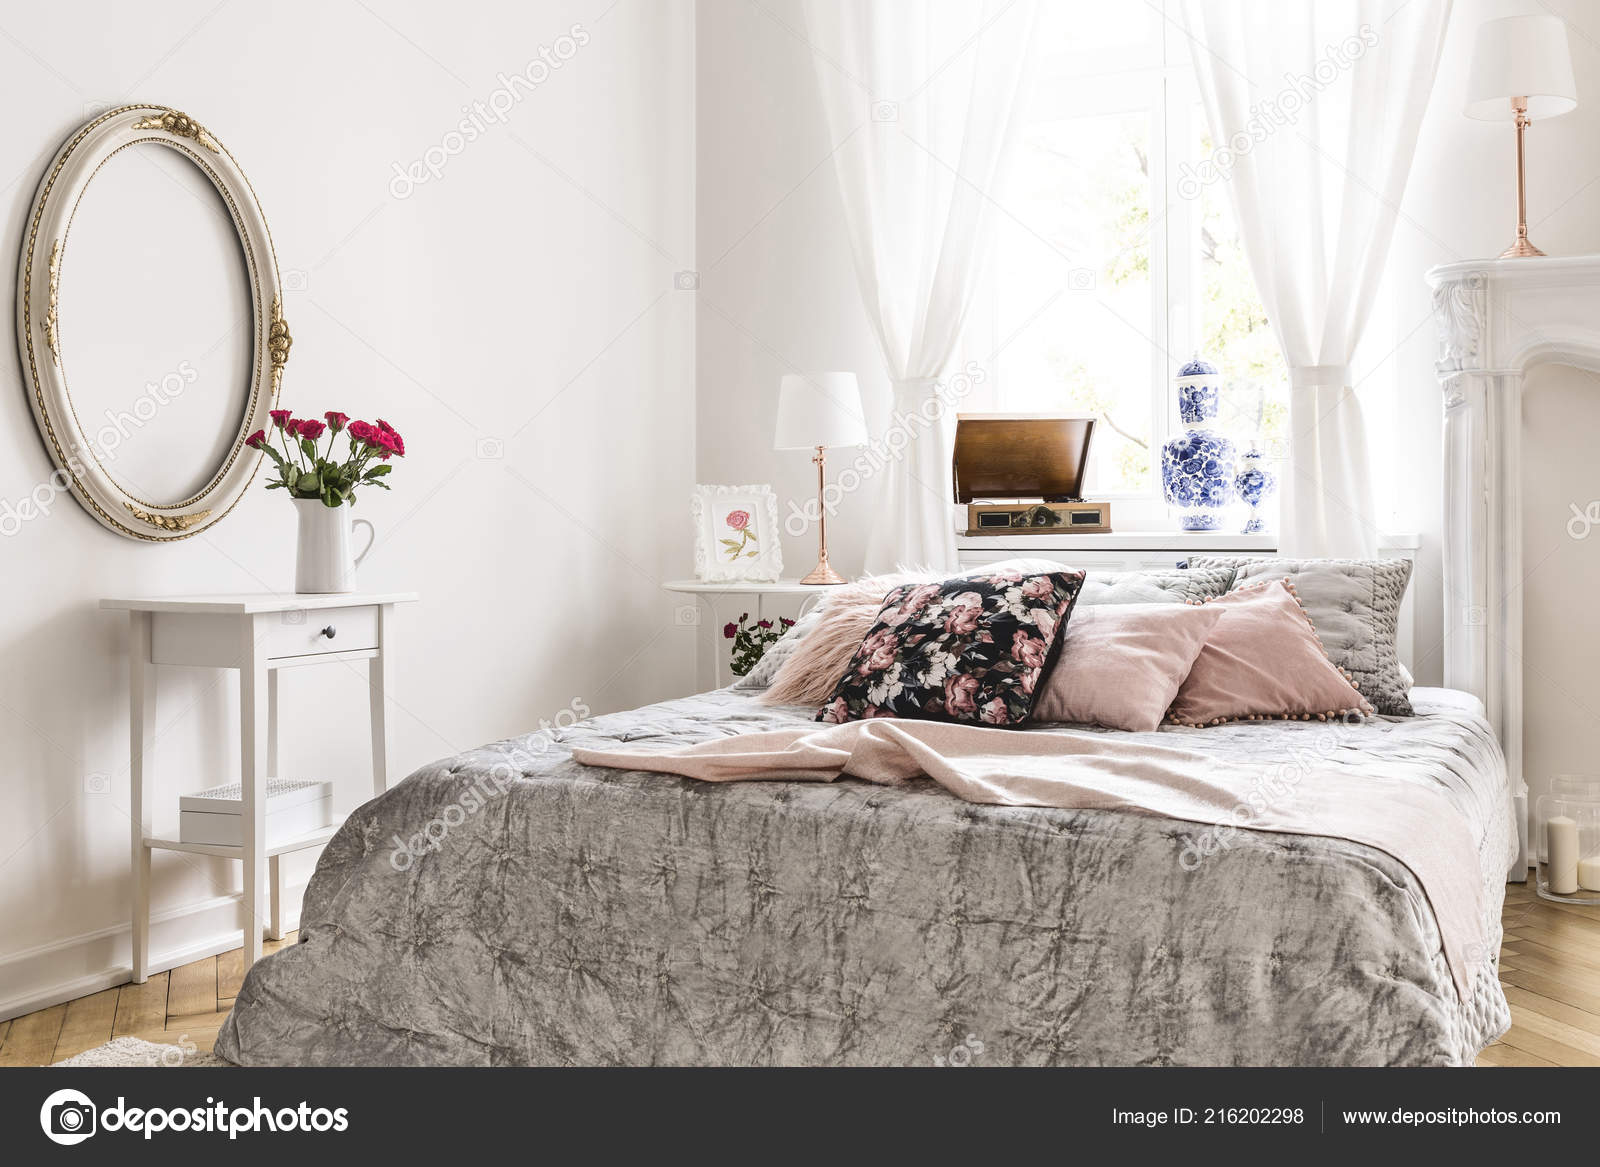 English Style Bedroom Interior Featuring Bed Light Gray Bedding